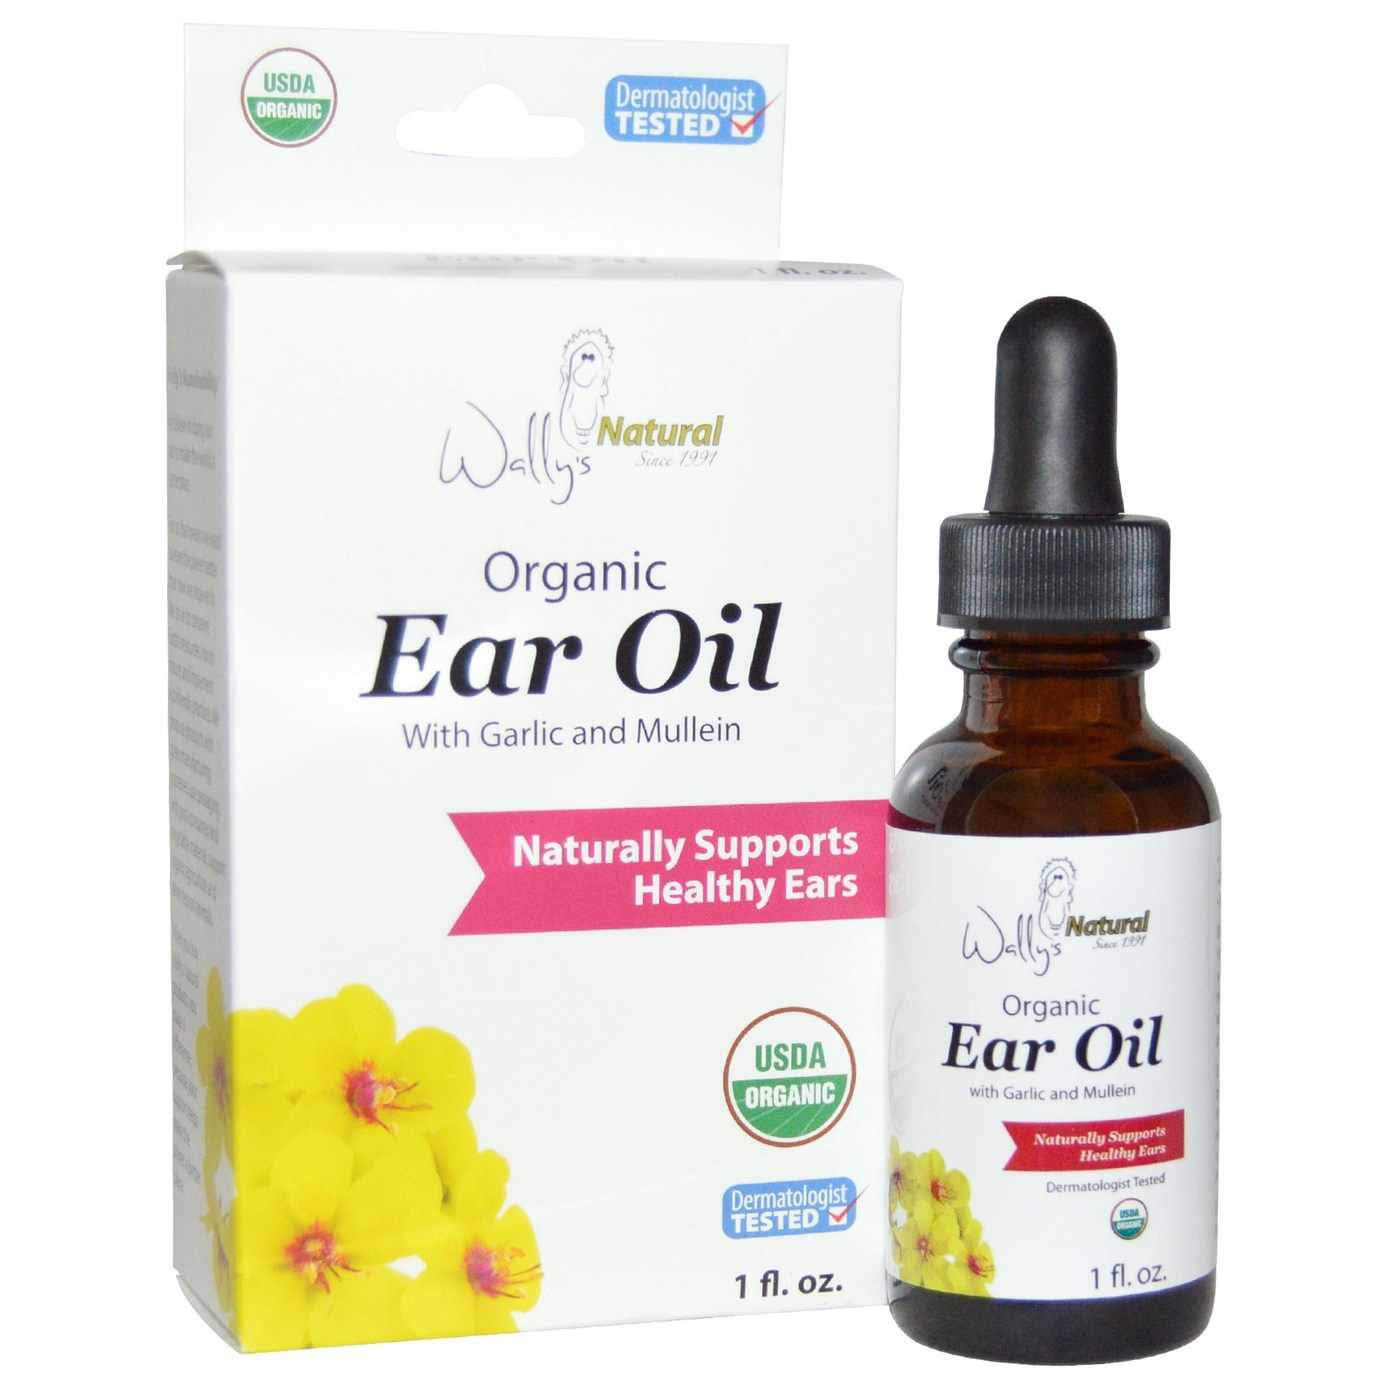 Wally ear oil